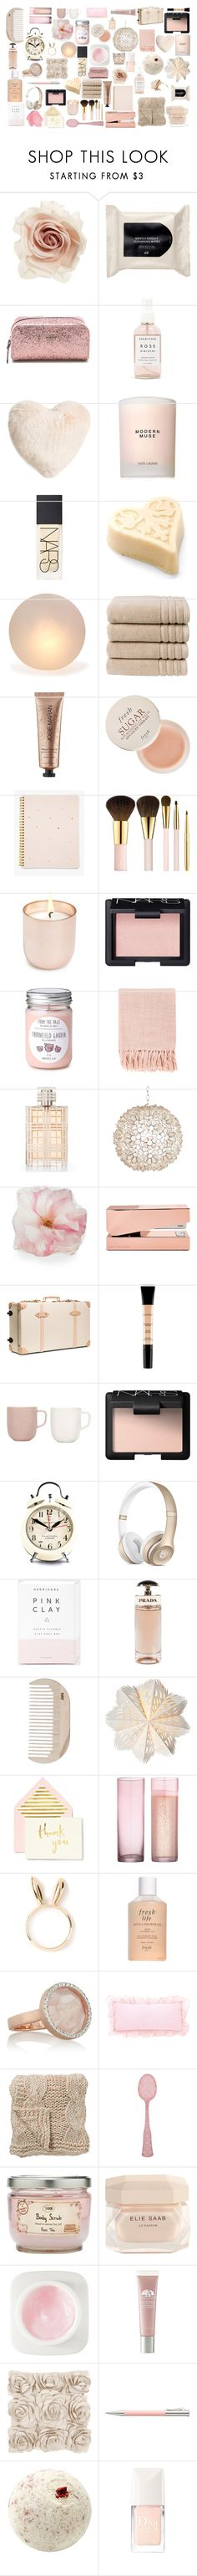 """""""light pink fillers"""" by juliehalloran ❤ liked on Polyvore featuring Cara, H&M, Kate Spade, Herbivore, Nordstrom, Estée Lauder, NARS Cosmetics, Mitchell Gold + Bob Williams, Christy and Josie Maran"""